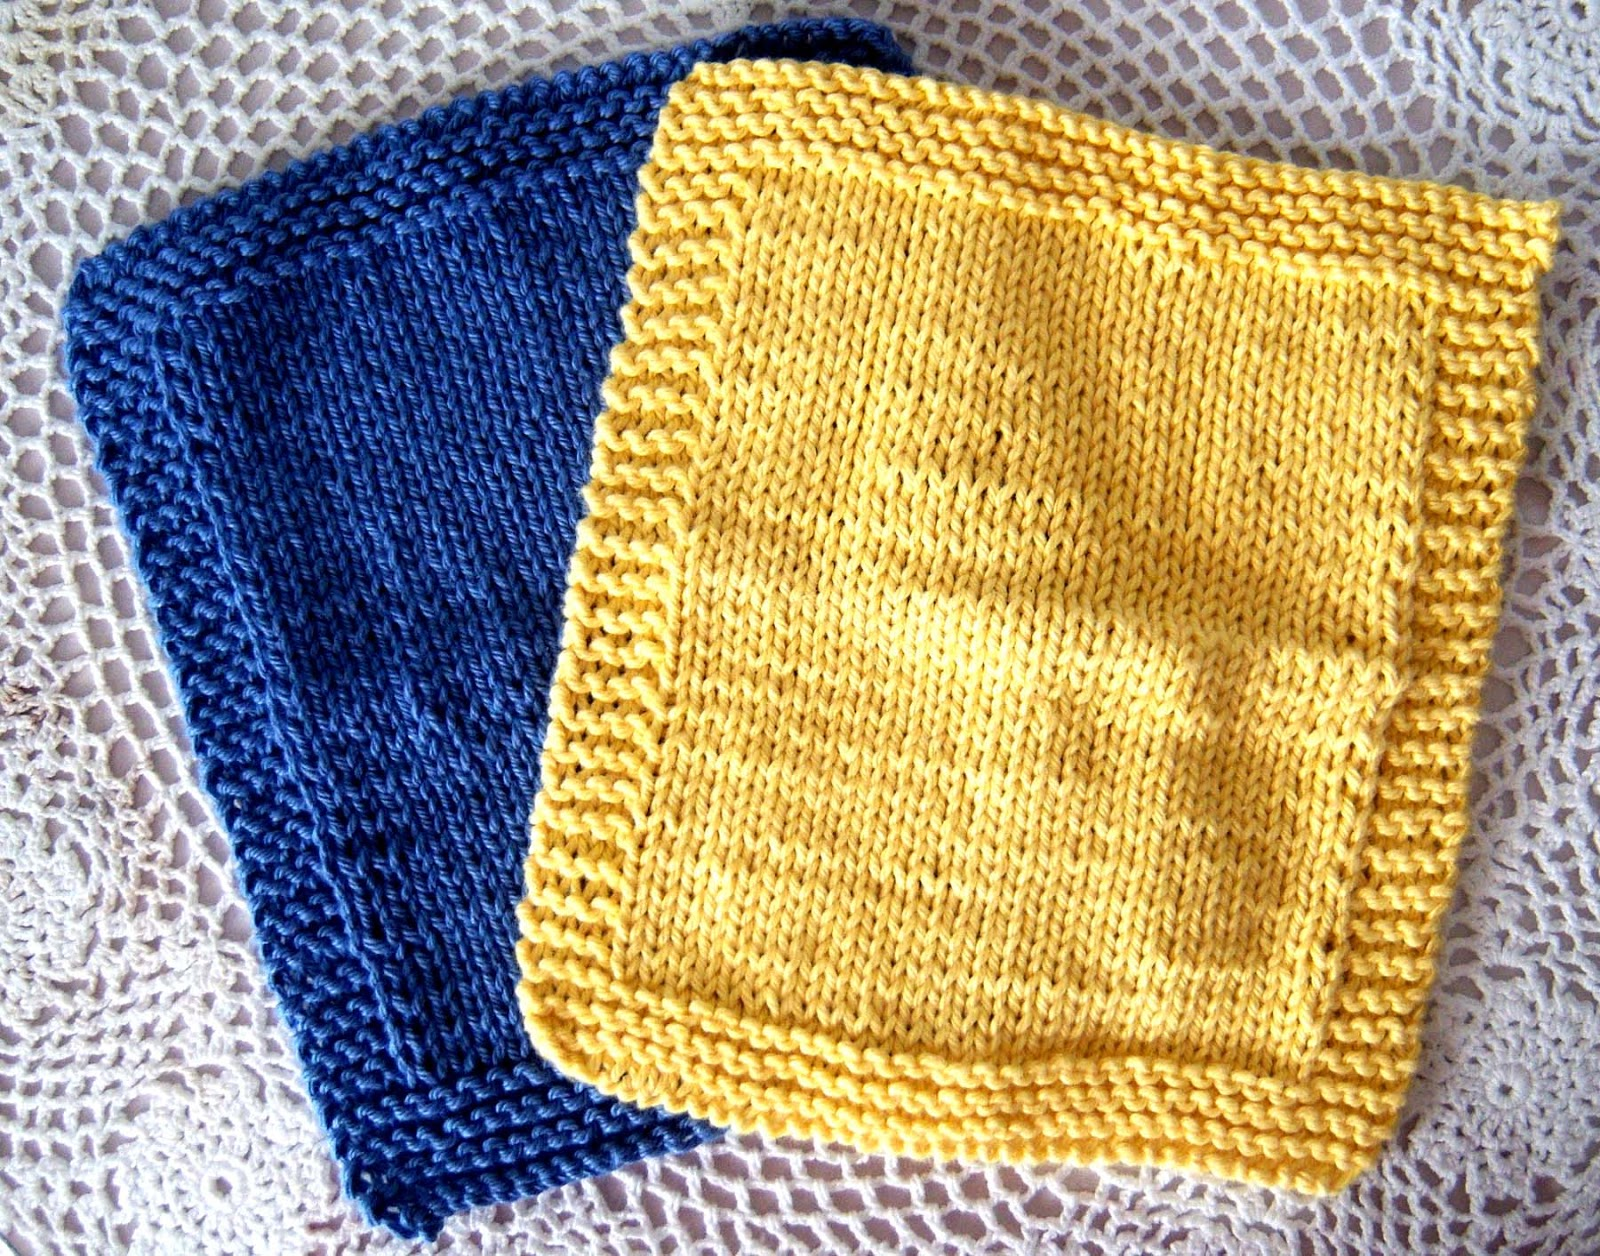 Knitted Dishcloth Patterns : Shoregirls Creations: Knitted Dishcloths